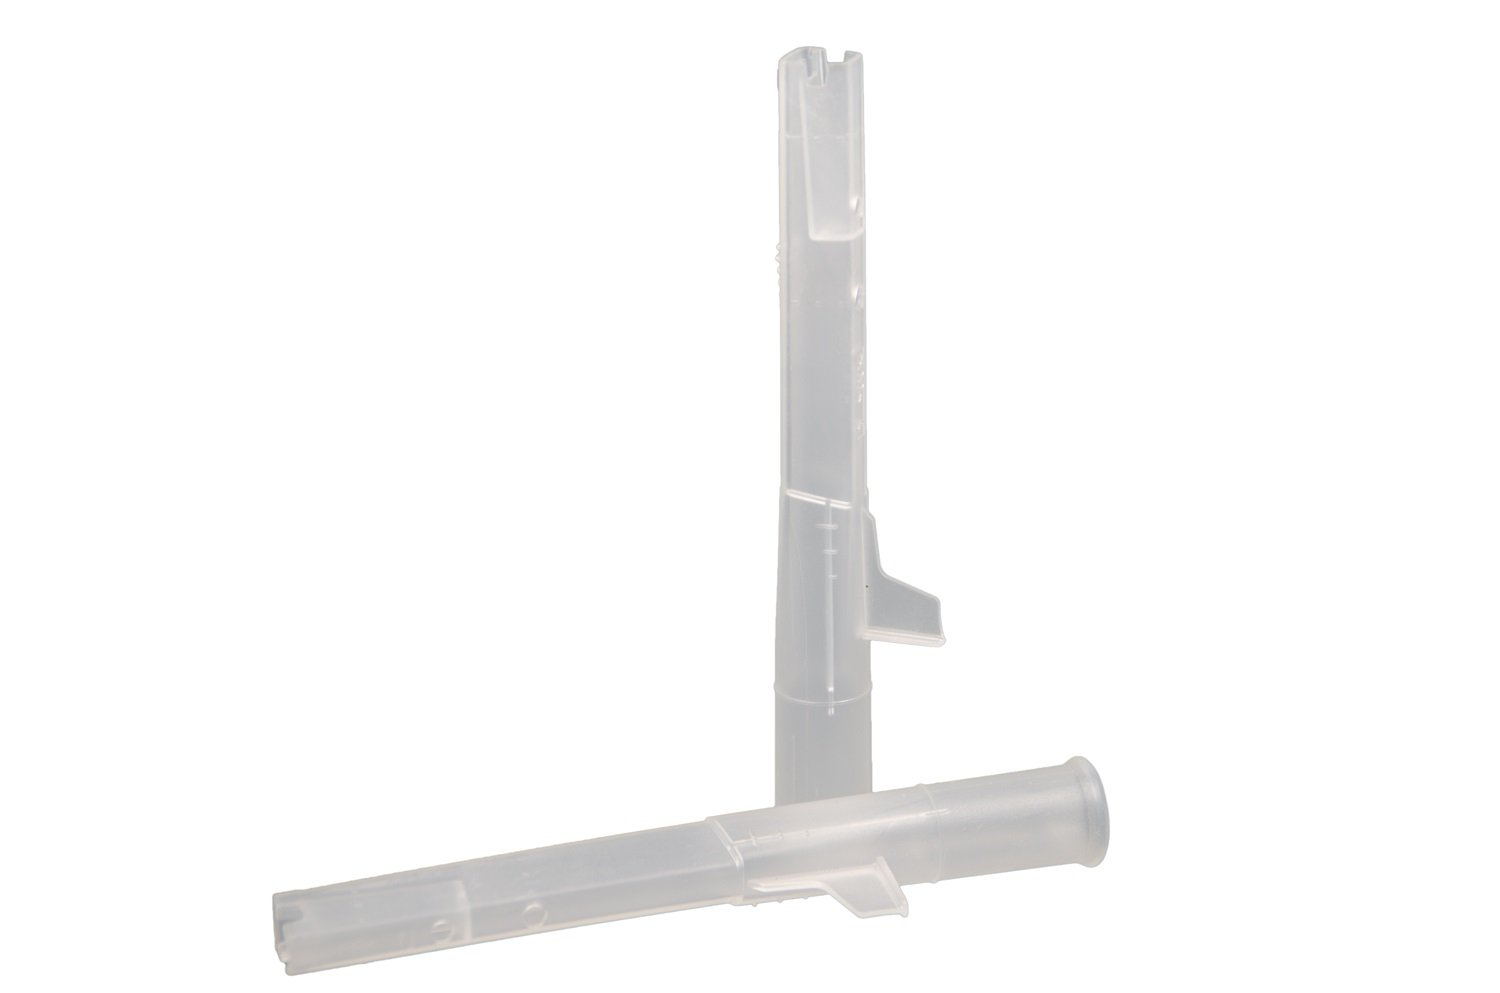 Mouthpieces for Drä ger breathalyser test 3000 6810, 5510, 6510, 7510 and much more.Variable packaging units Dräger DR-50